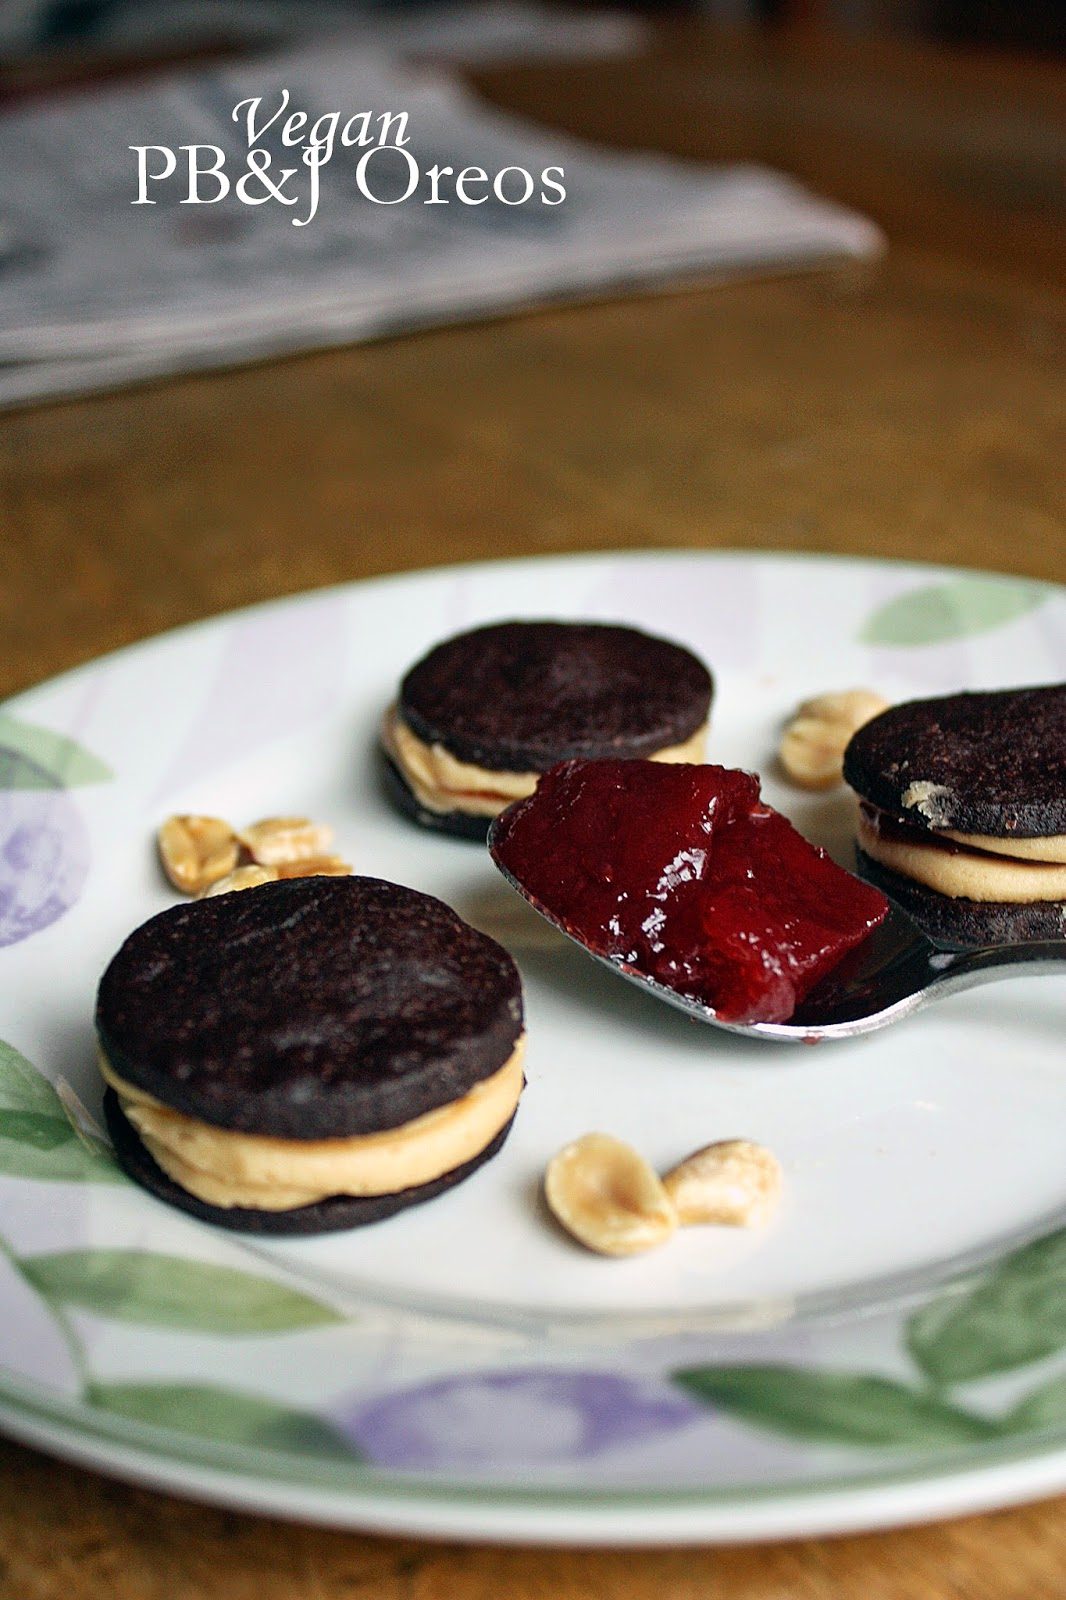 vegan peanut butter and jelly oreos